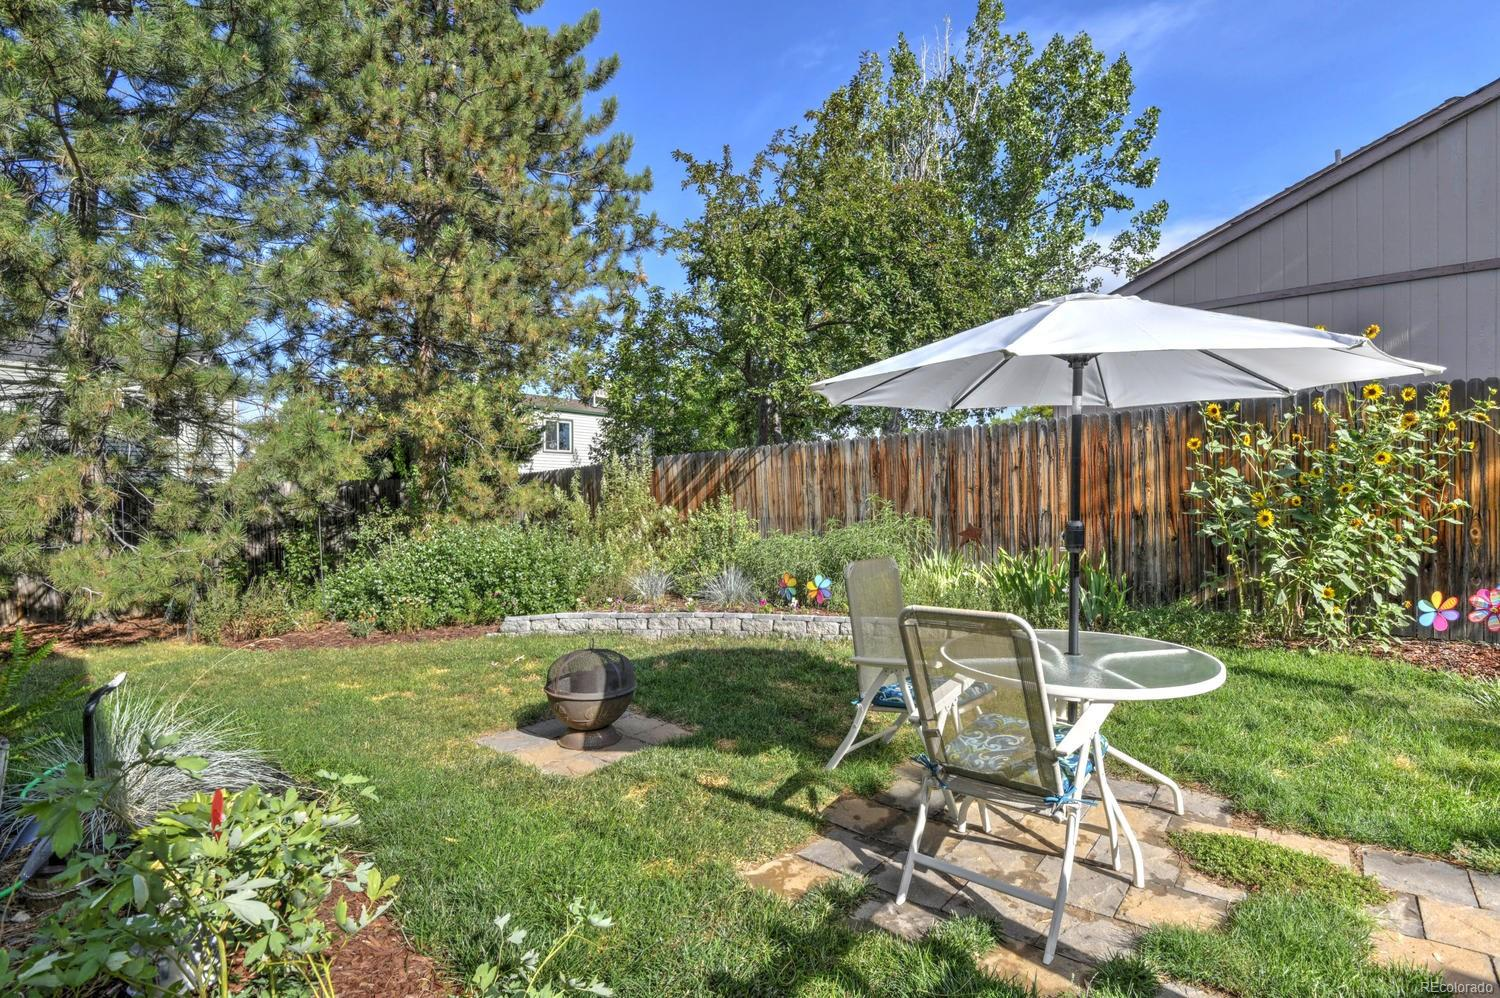 Privacy Fence surrounds the property